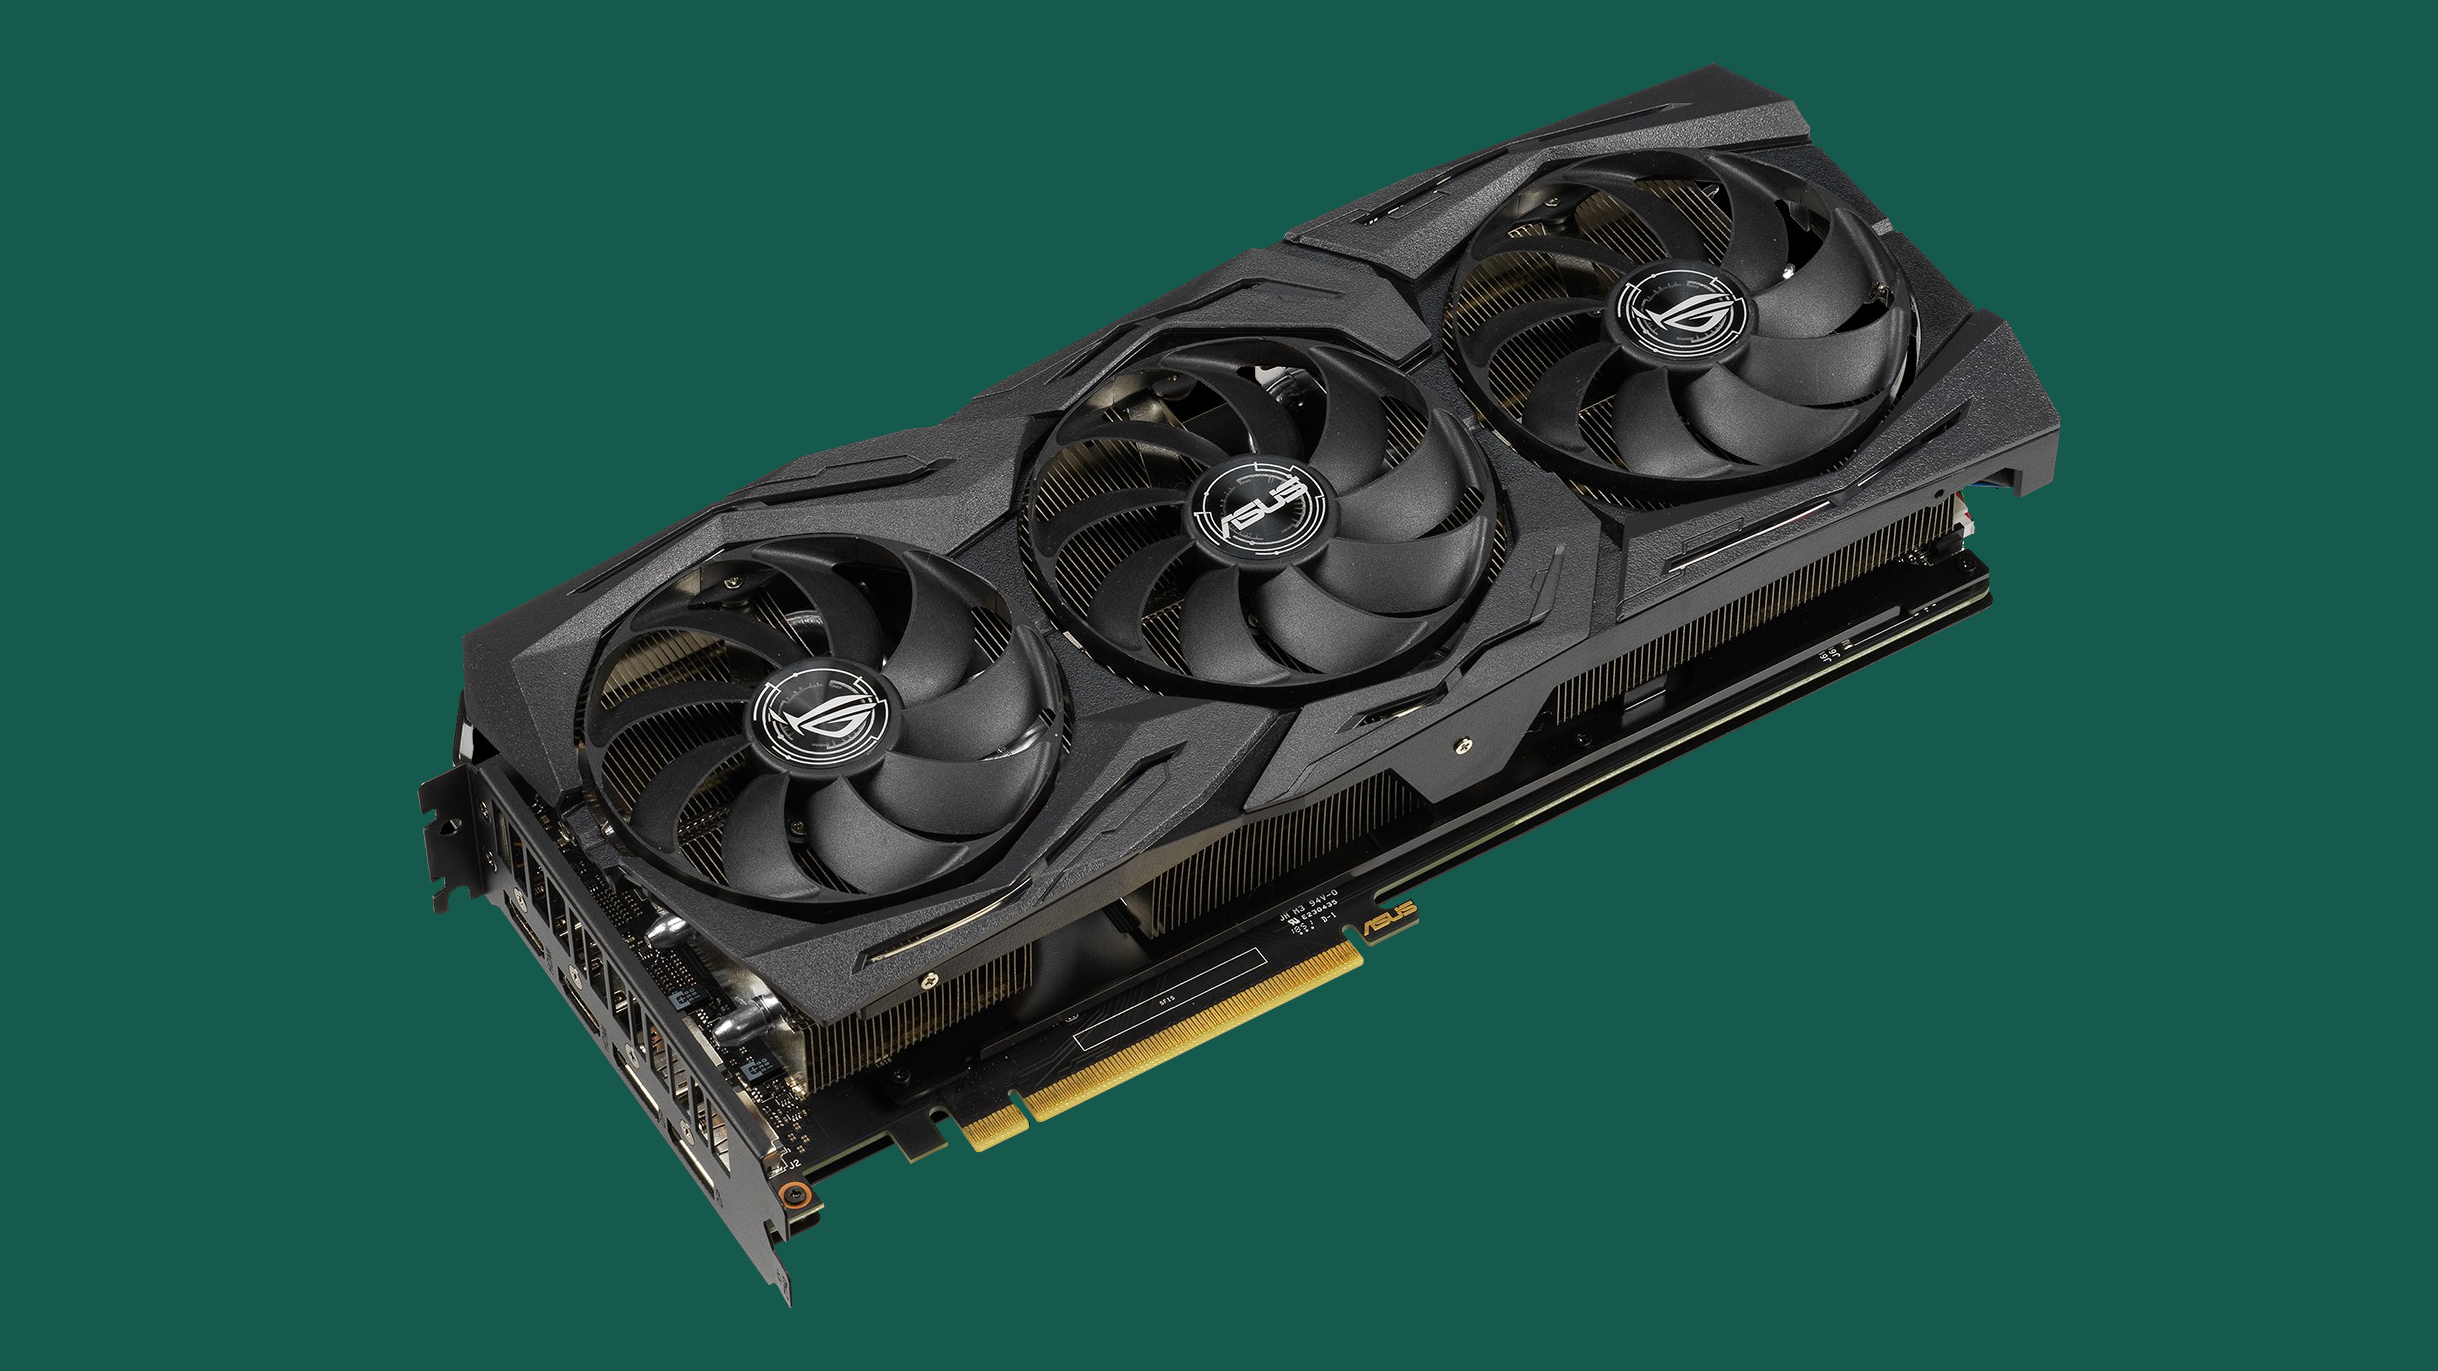 The Best Nvidia GeForce GTX 1660 Ti Model Available In 2021 - Asus ROG Strix GTX 1660 Ti OC